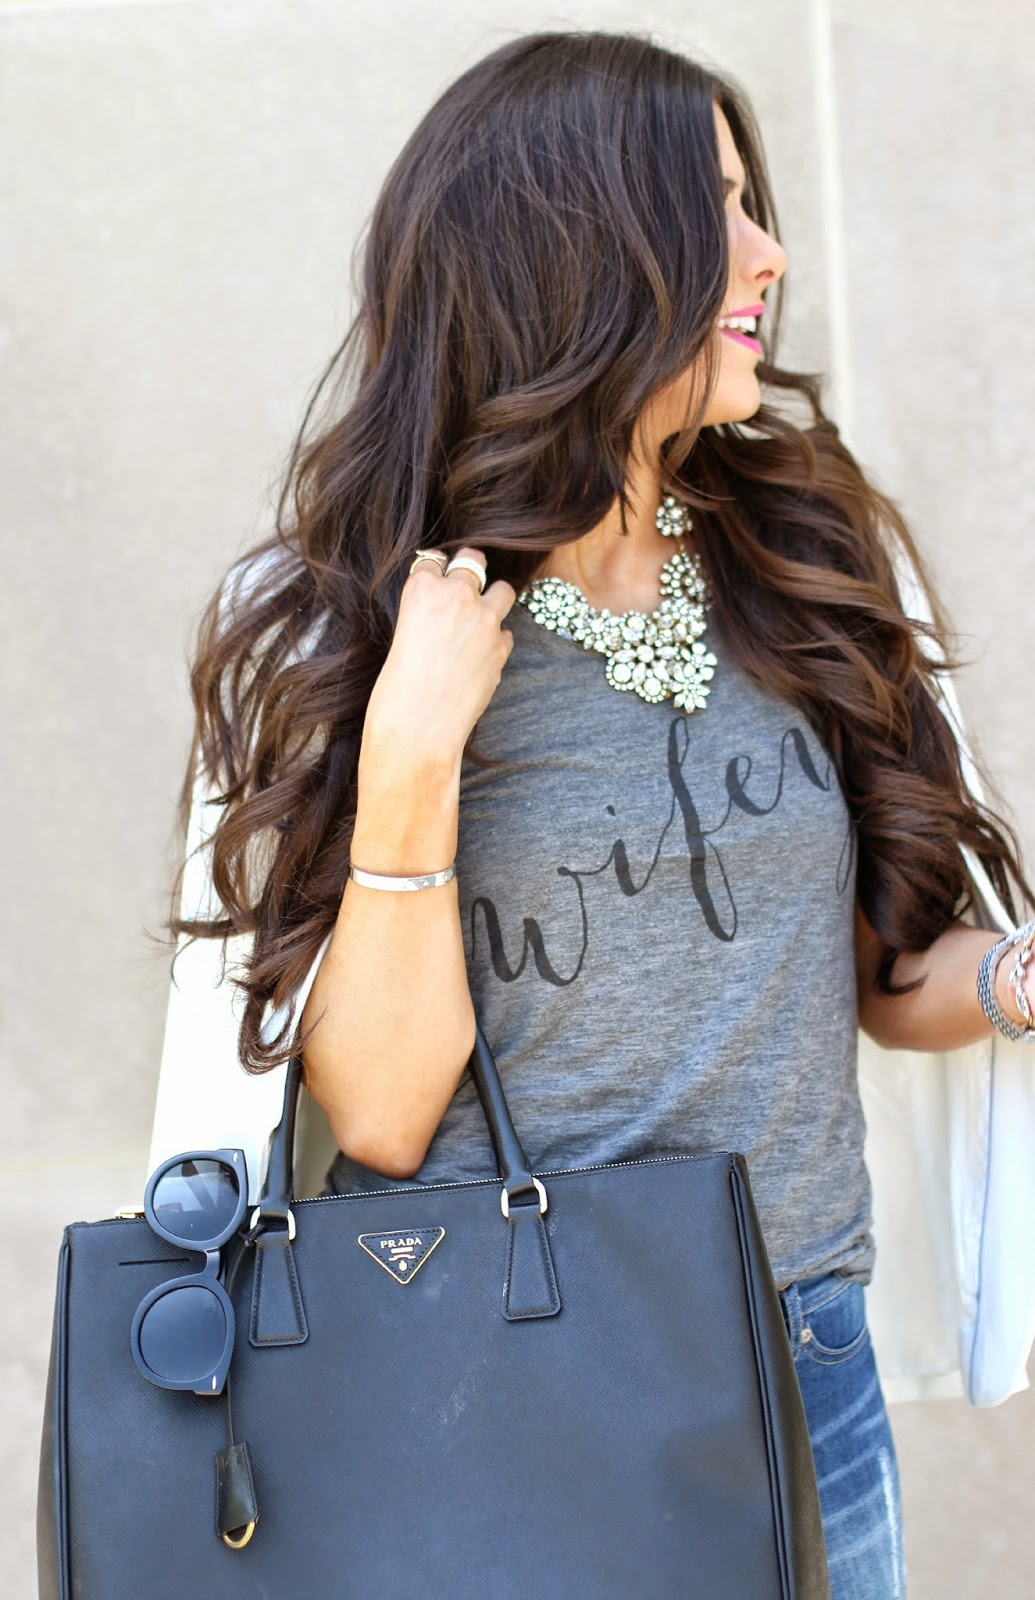 www.TheSweetestThingBlog.com, The Sweetest Thing, Emily Gemma, Emily Ann Gemma on Instagram, Emily Ann Gemma Pinterest, Wifey Tee Shirt, ILY couture Wifey Tee Shirt, How to style a gray tee, dittos skinny jeans, skinny jeans at nordstrom, christian louboutin heels, christian louboutin so kate 120mm, prada executive tote, prada bag in black large double zip, crystal flower necklace jcrew, white blazer, white blazer from nordstrom, white blazer from h&m, white boyfriend blazer, women's long white blazer, how to style a white blazer, how to wear nude pumps with jeans, nude pumps, pinterest summer fashion 2014, pinterest outfits for summer 2014, spring fashion 2014, style blogger, fashion blog with wifey tee, karen walker sunglasses